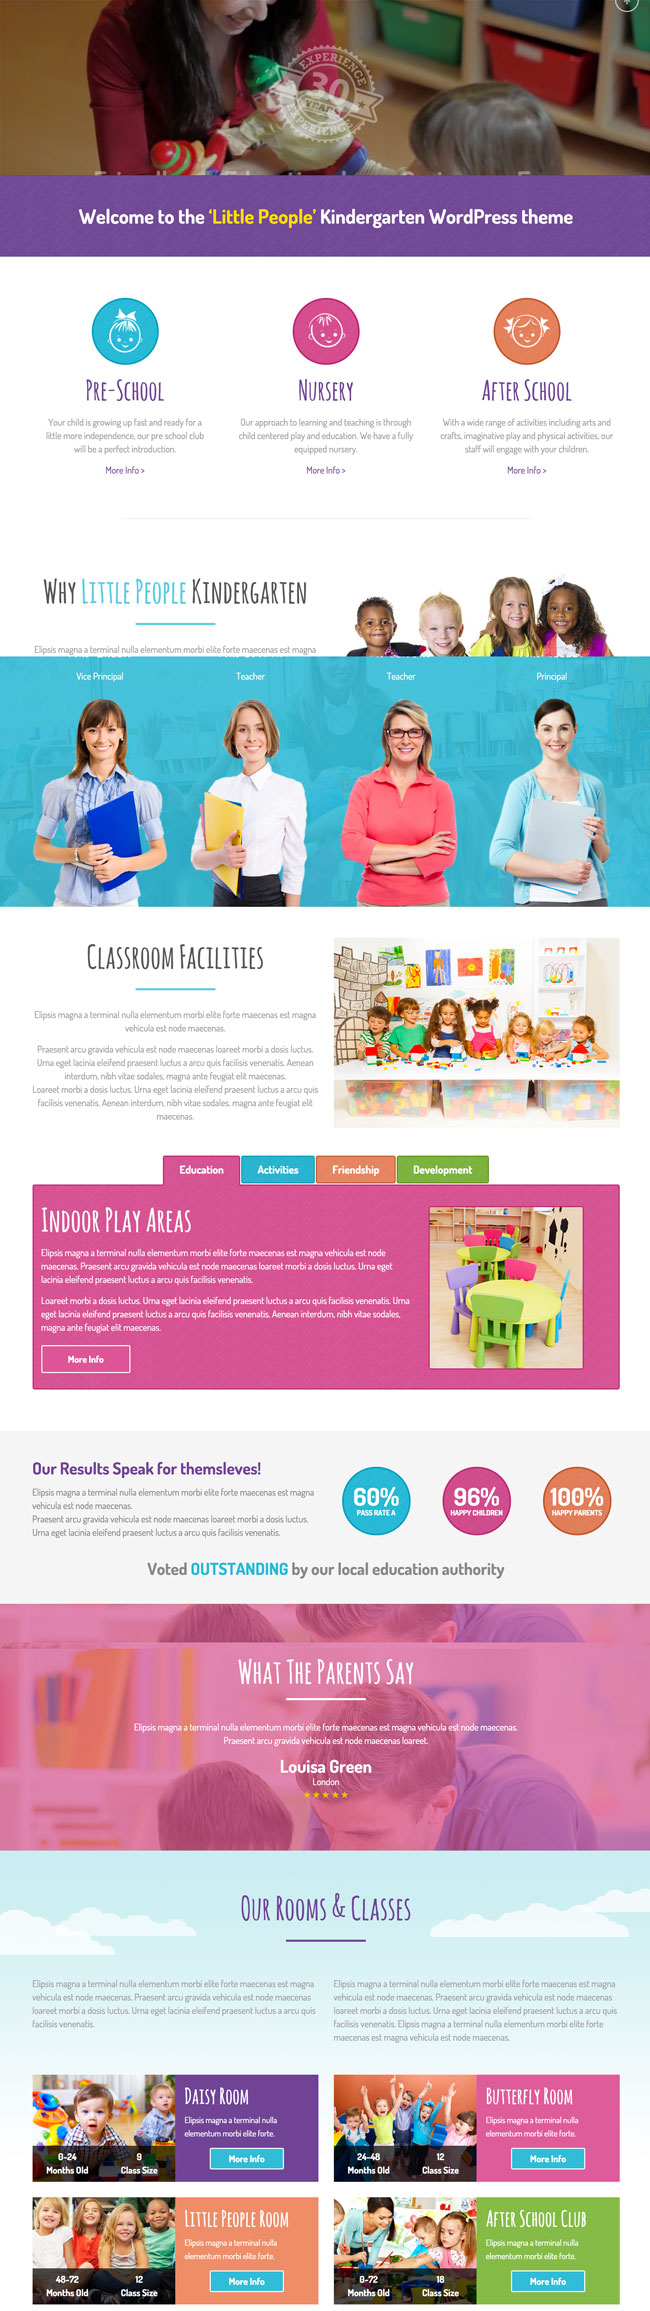 Kindergarten-Little-People-WordPress-theme